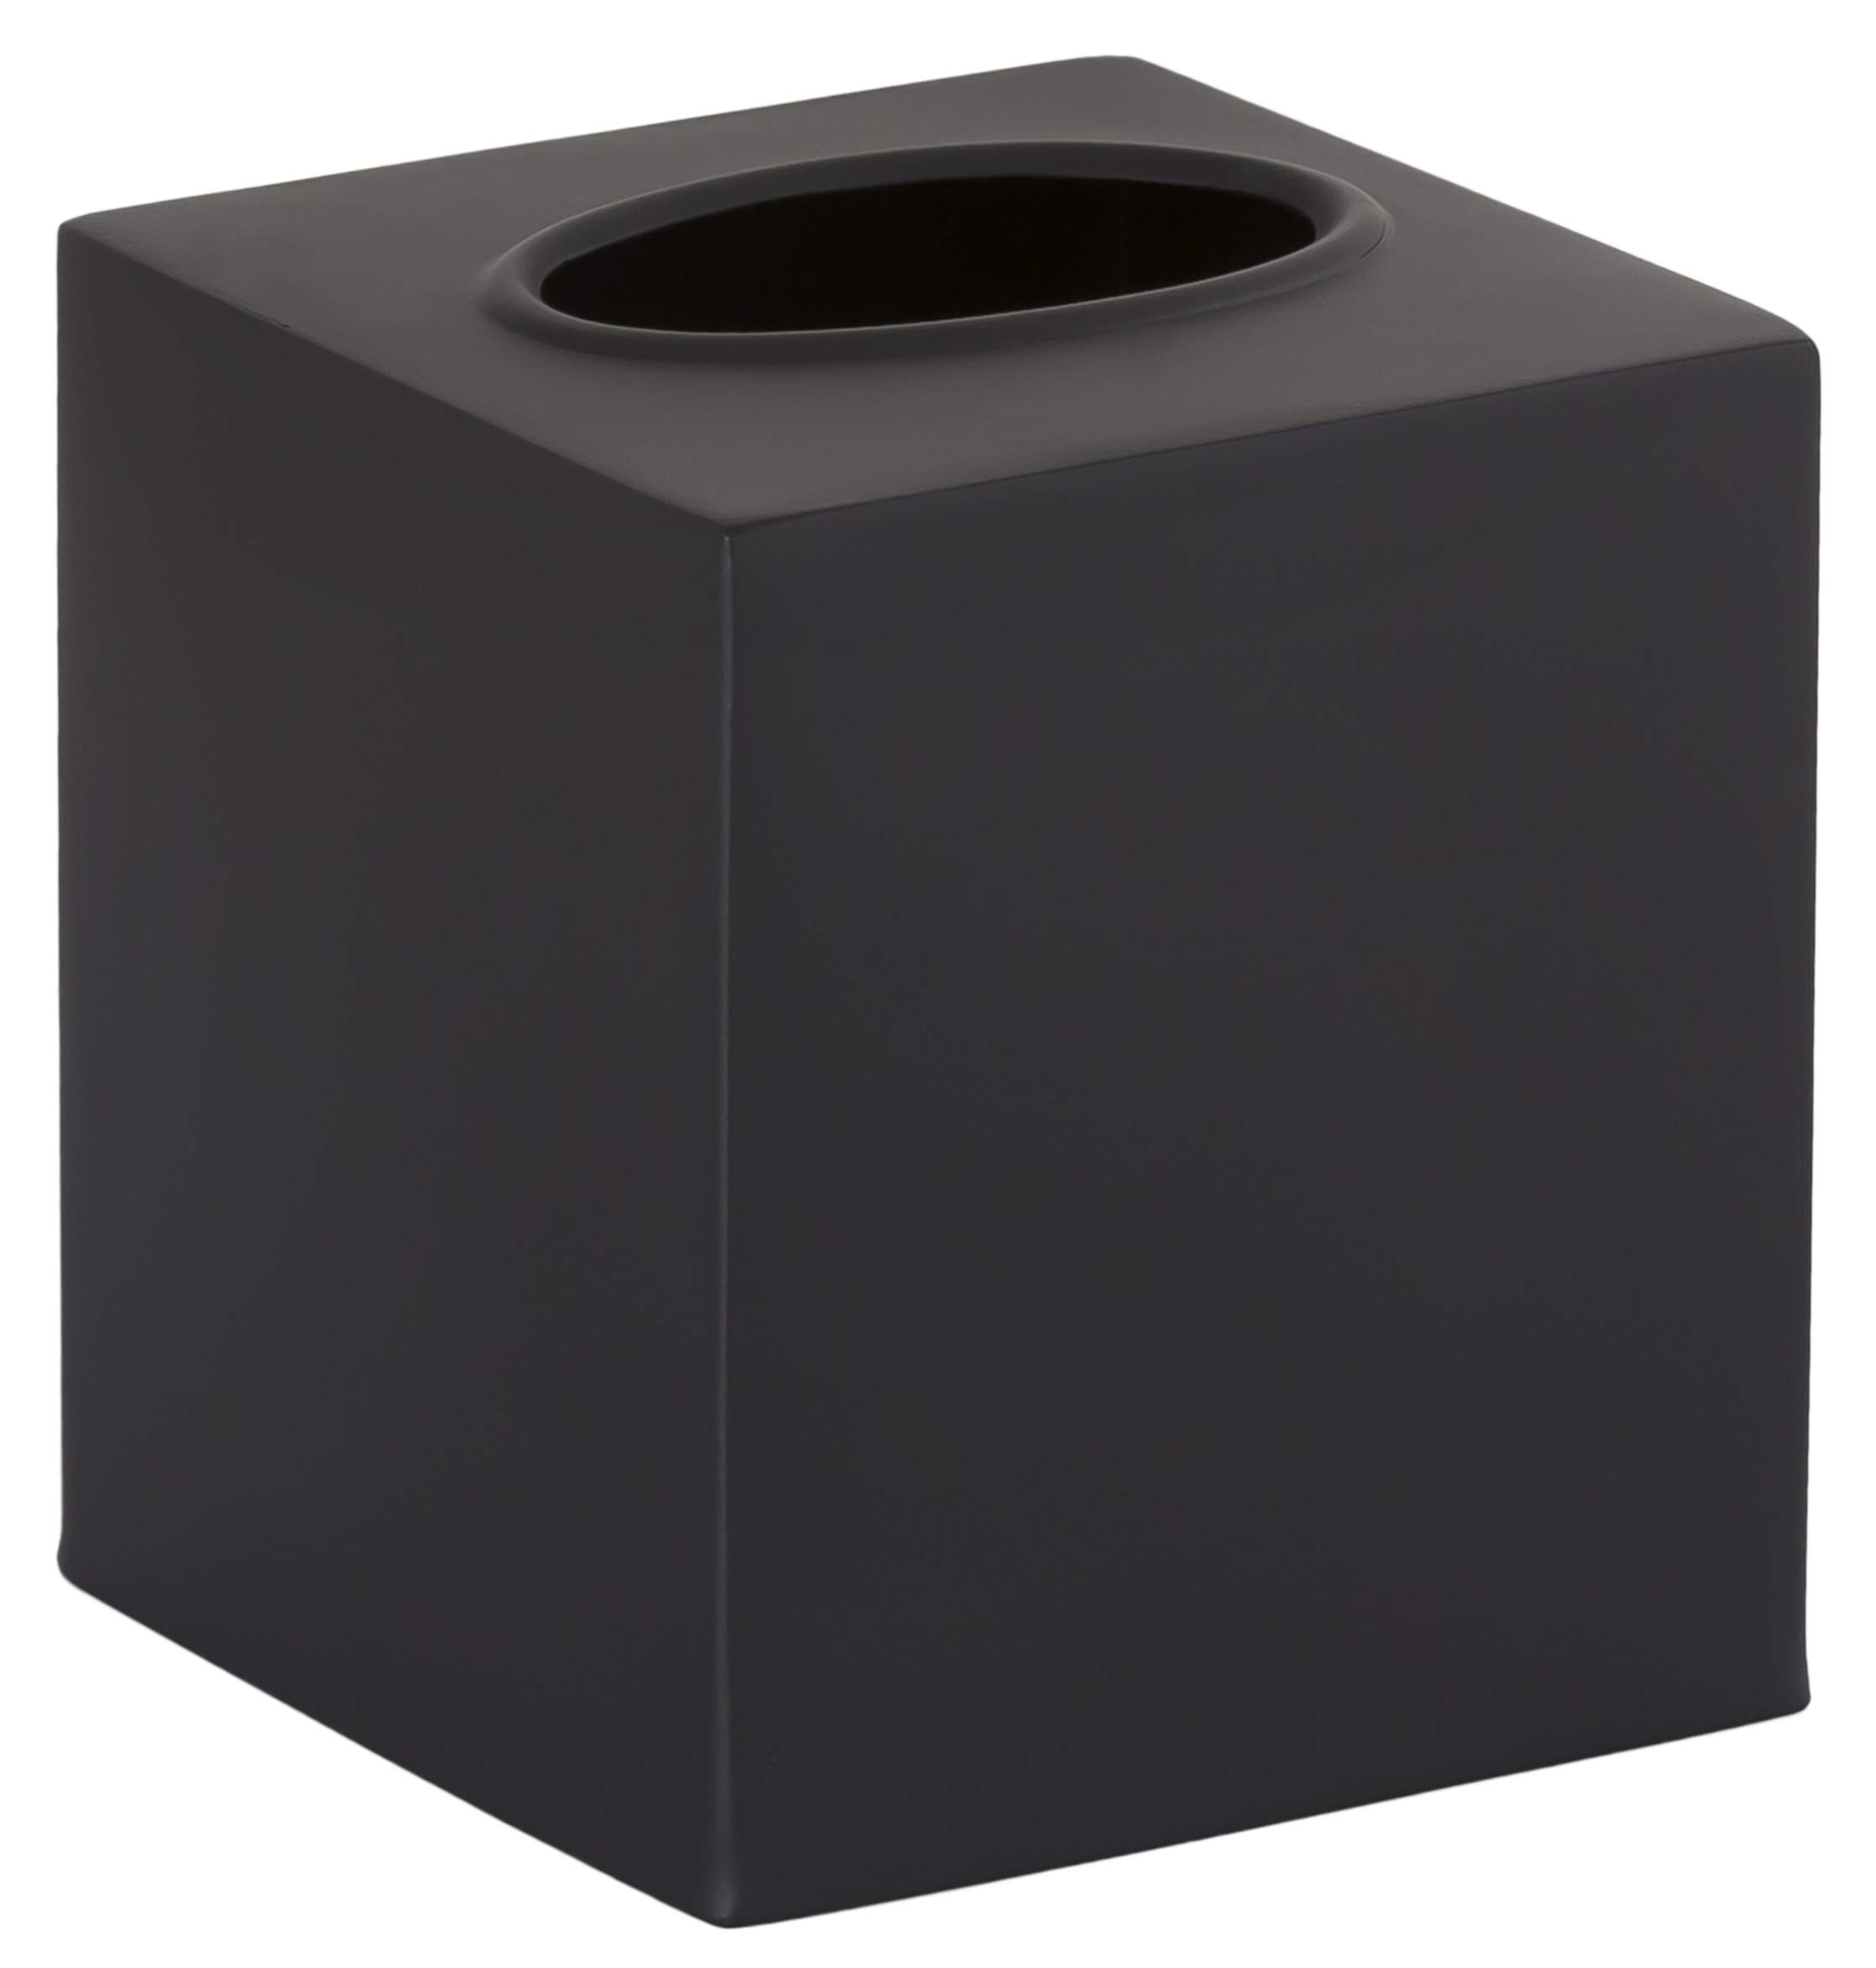 Gramercy Accents, Heavyweight Brass, Matte Black Finish, Boutique Tissue Box Cover, 4.75 Inches by 5.5 Inches